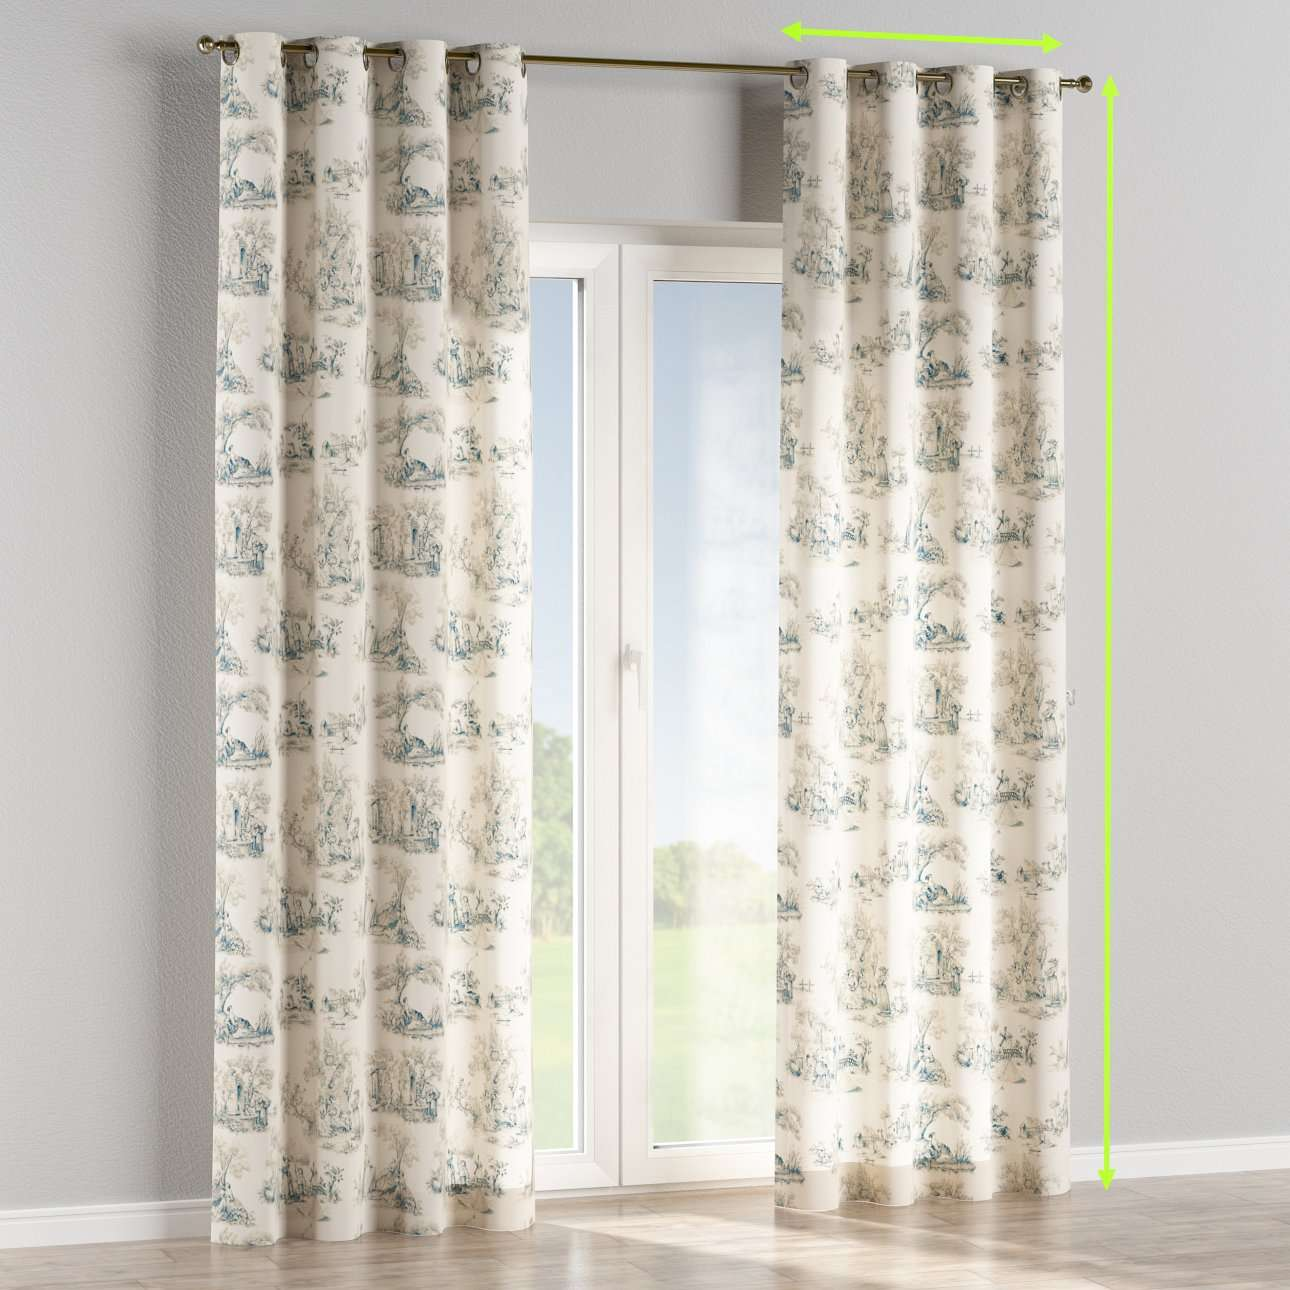 Eyelet curtains in collection Avinon, fabric: 132-66